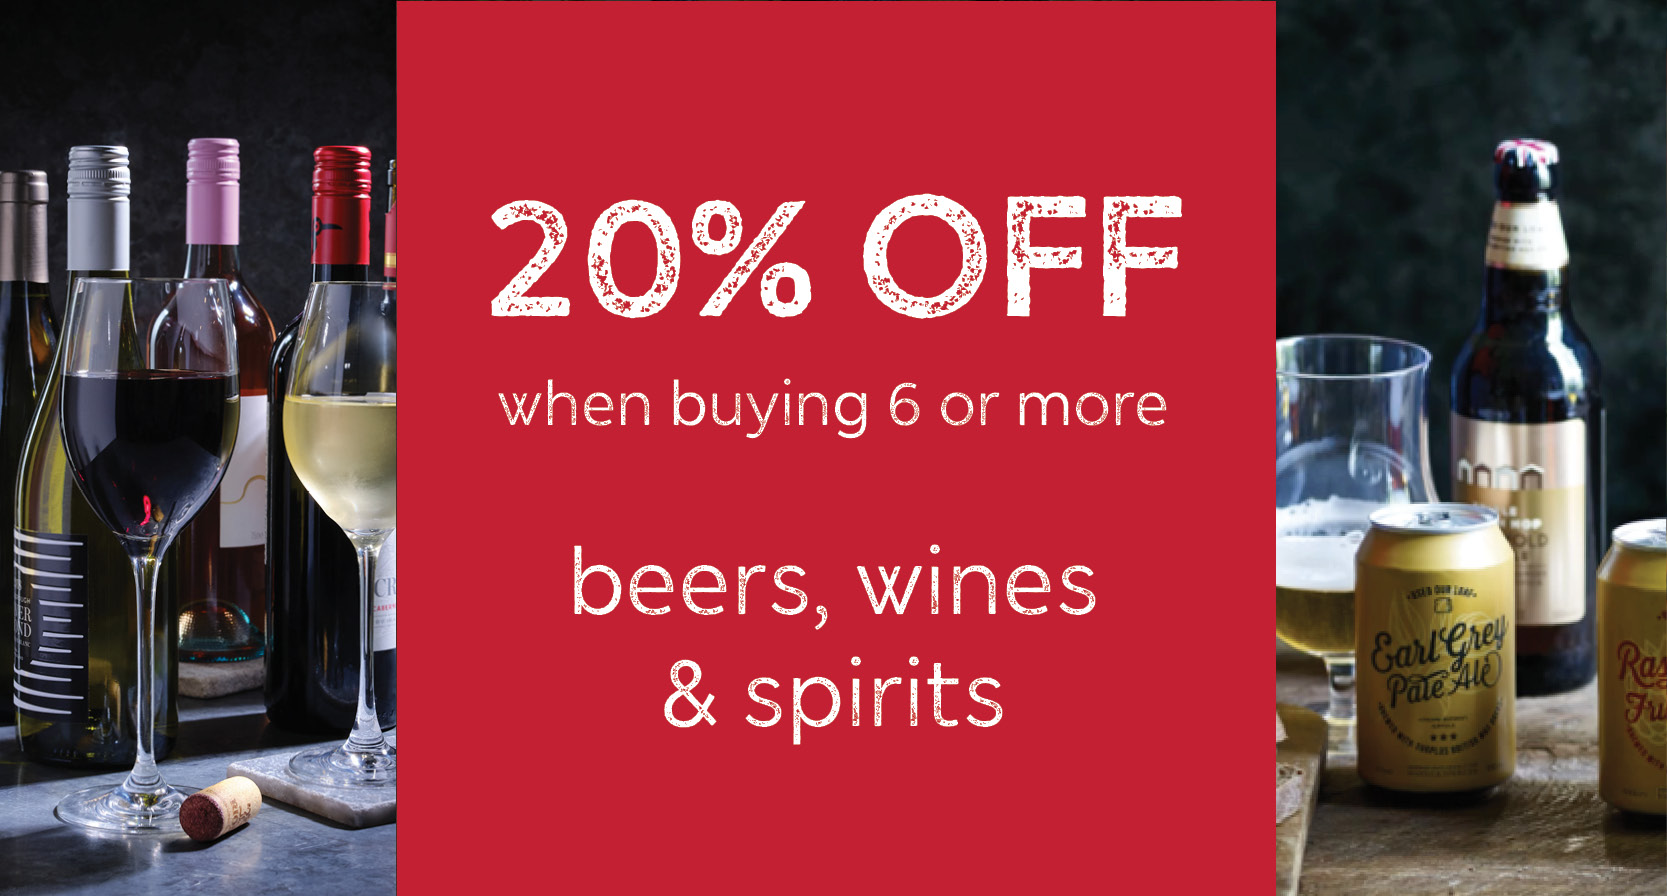 M&S Winedrop 20% off Wines Spirits Beer